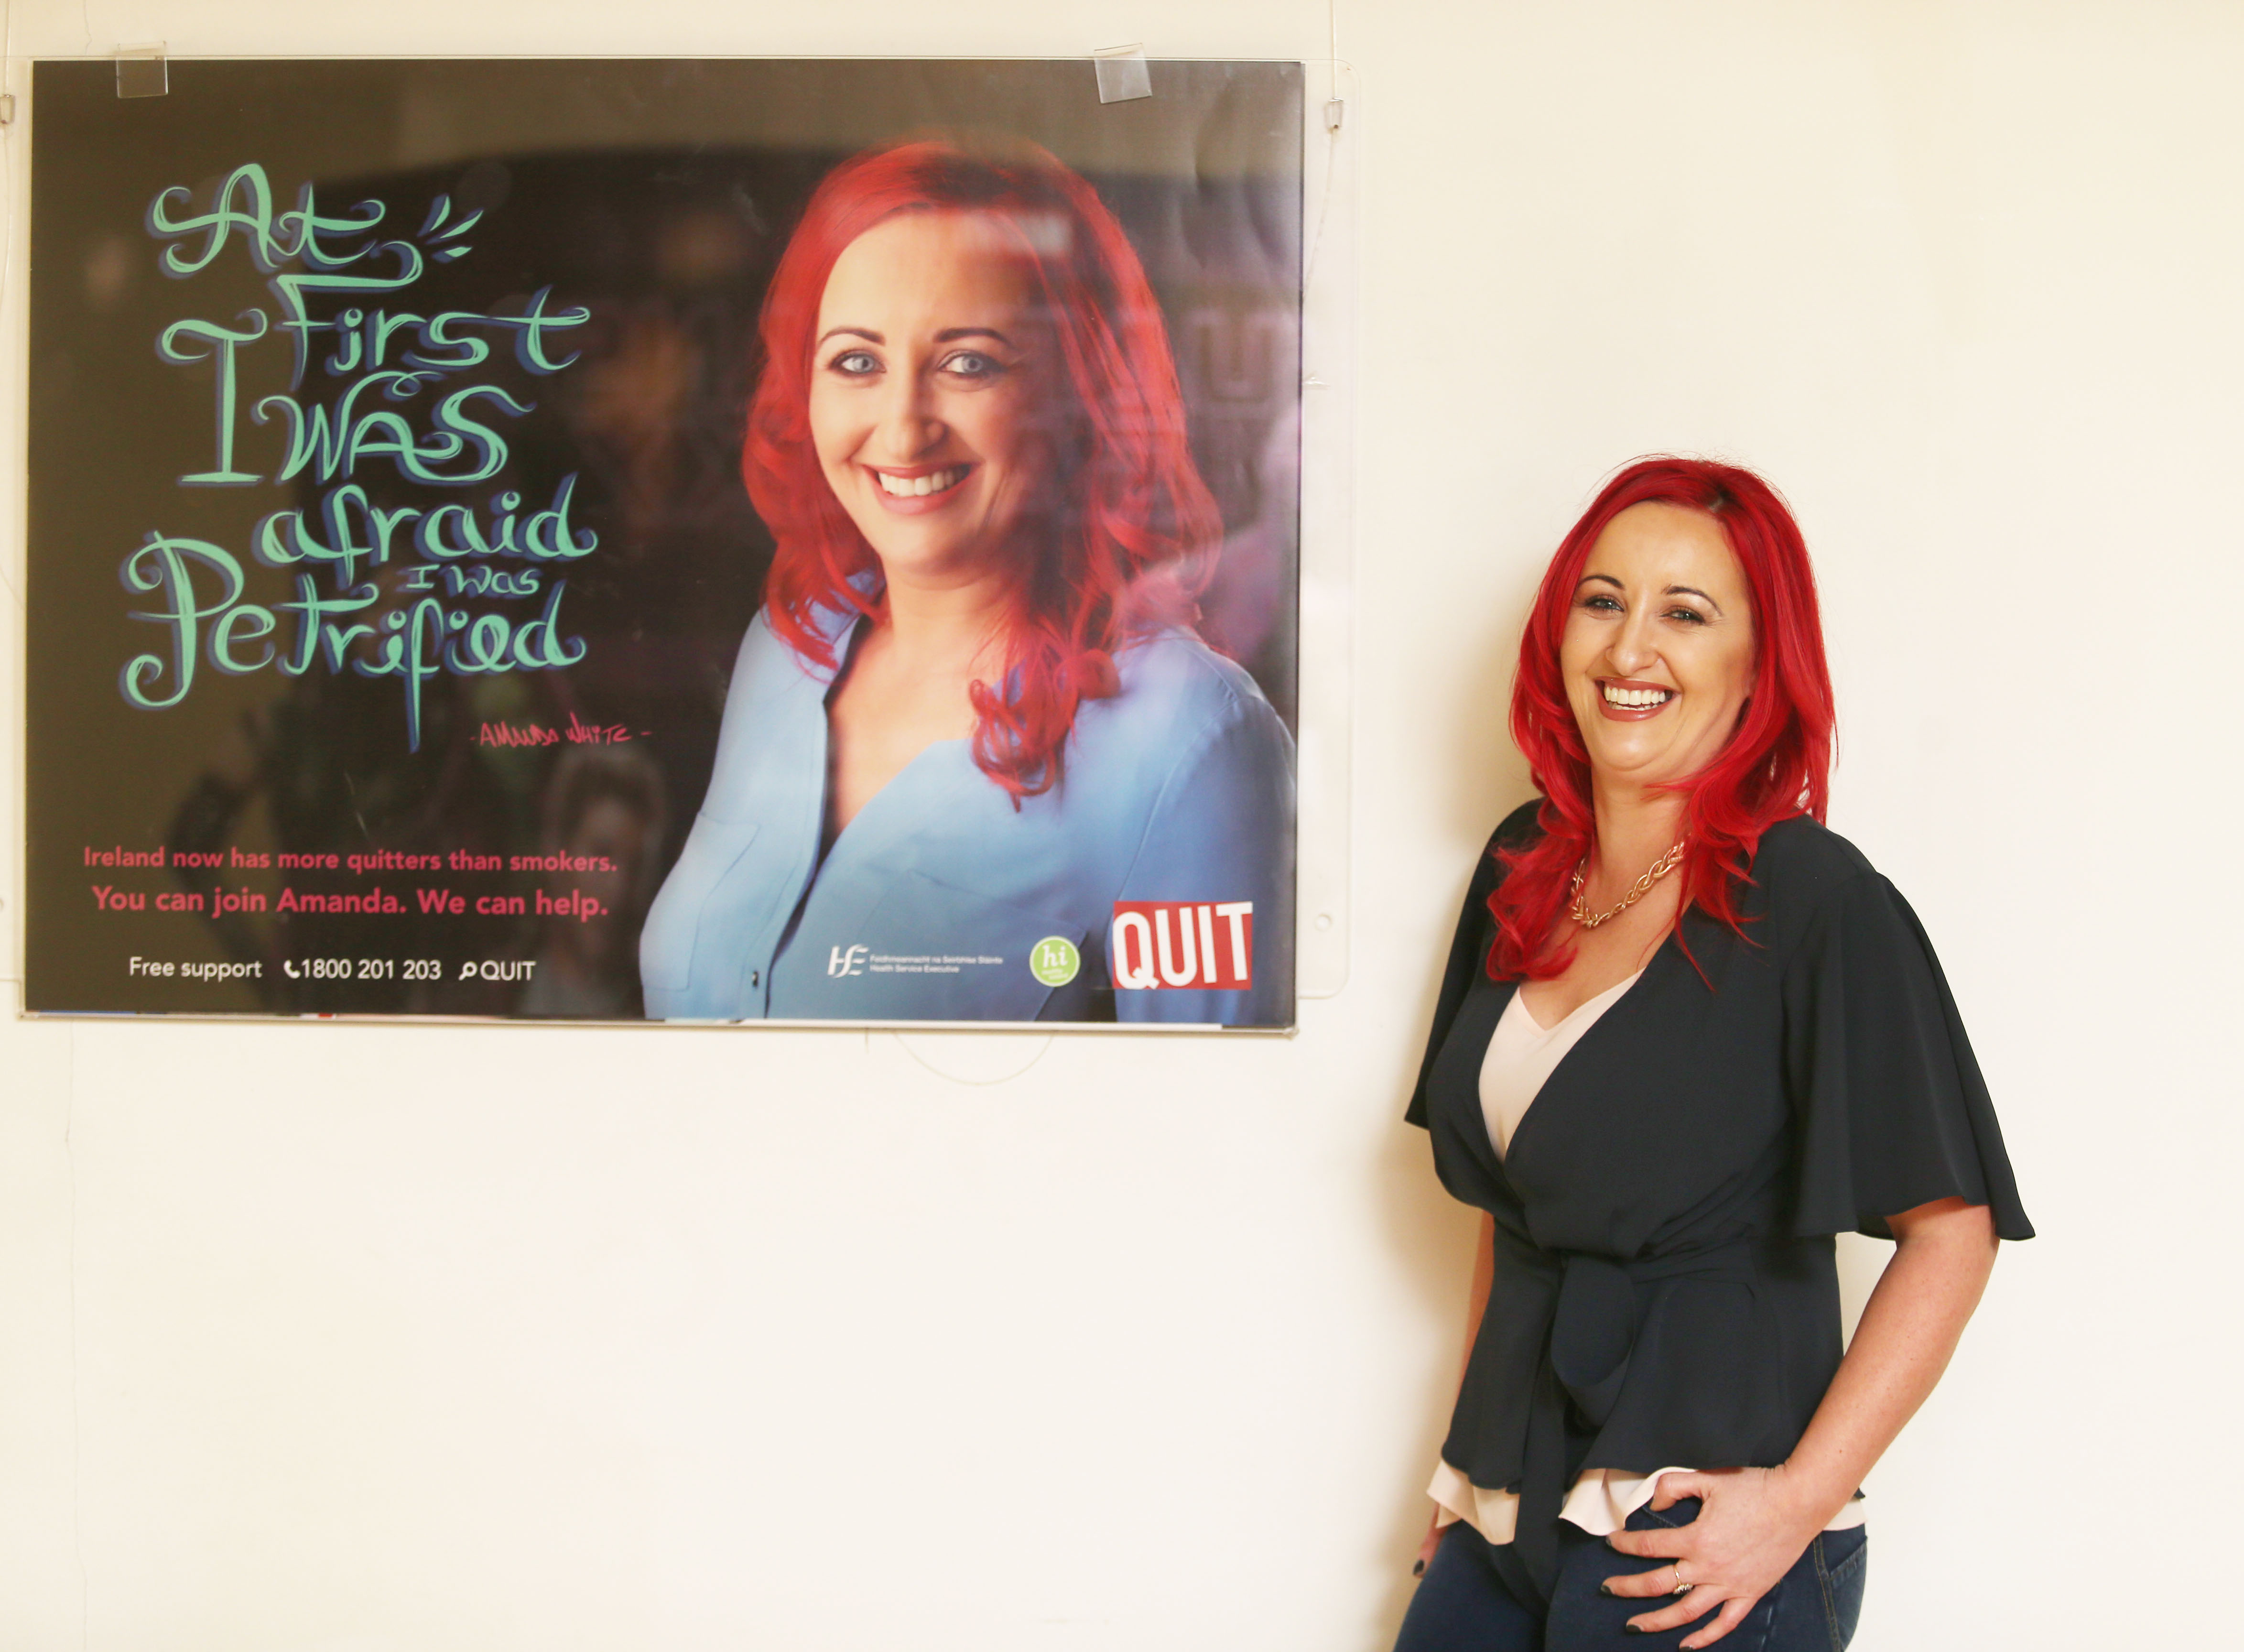 Amanda White from Nenagh, Co Tipperary, features in the new HSE QUIT campaign that uses real-life stories to encourage smokers to quit for good with help and support from QUIT.